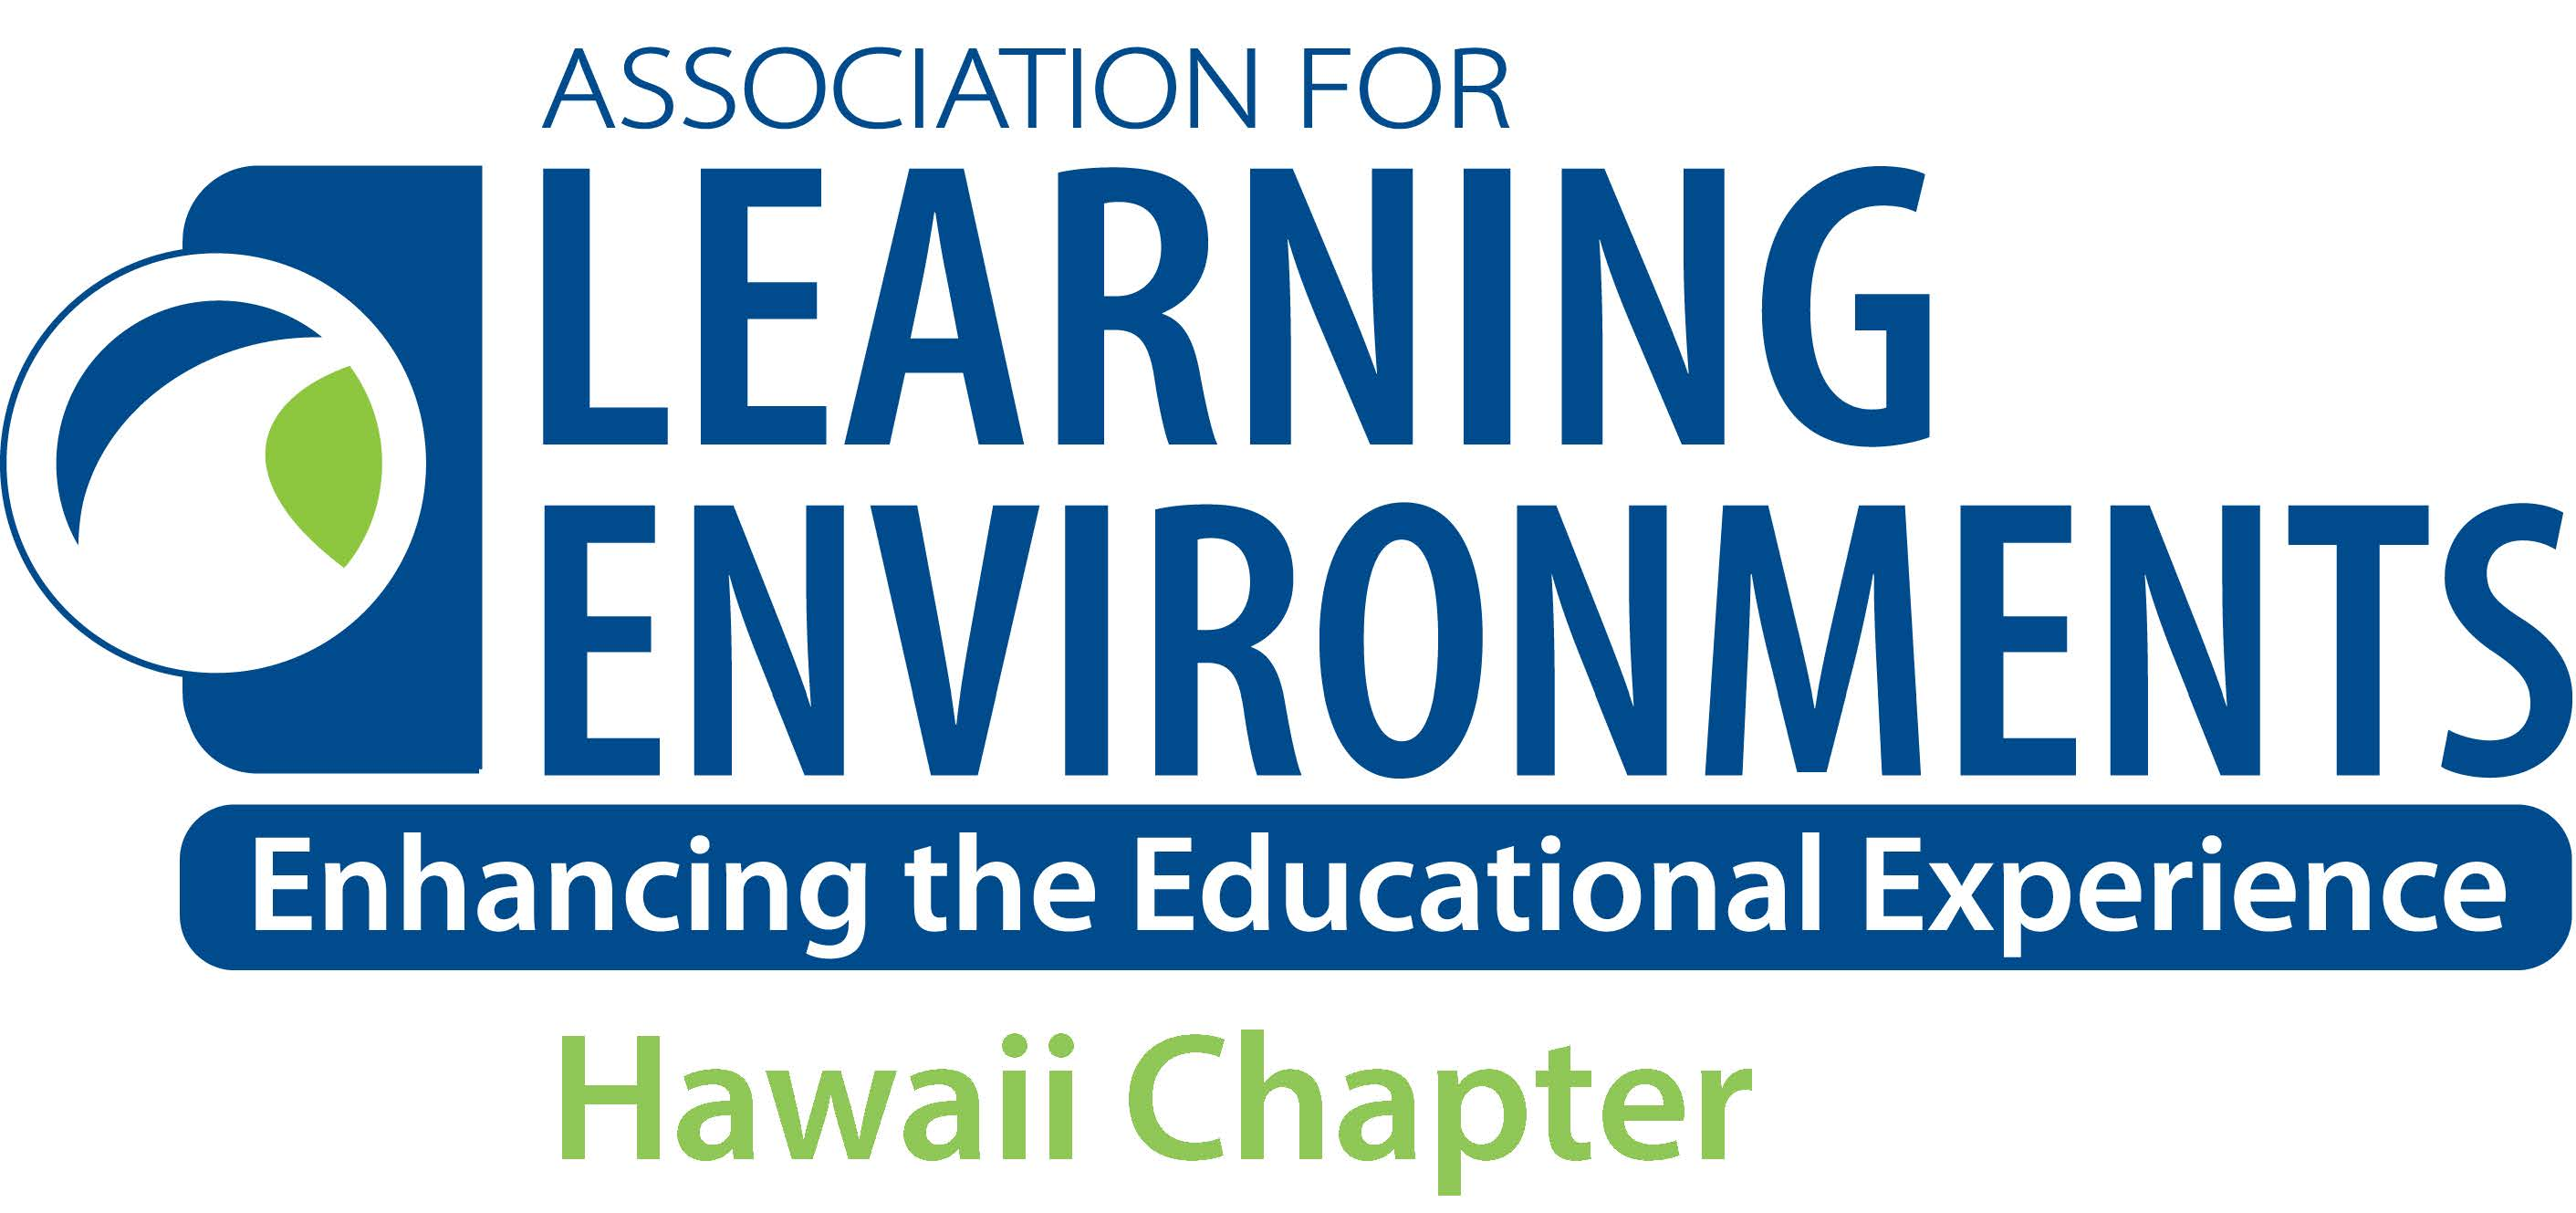 2019 Hawaii Chapter Event - May